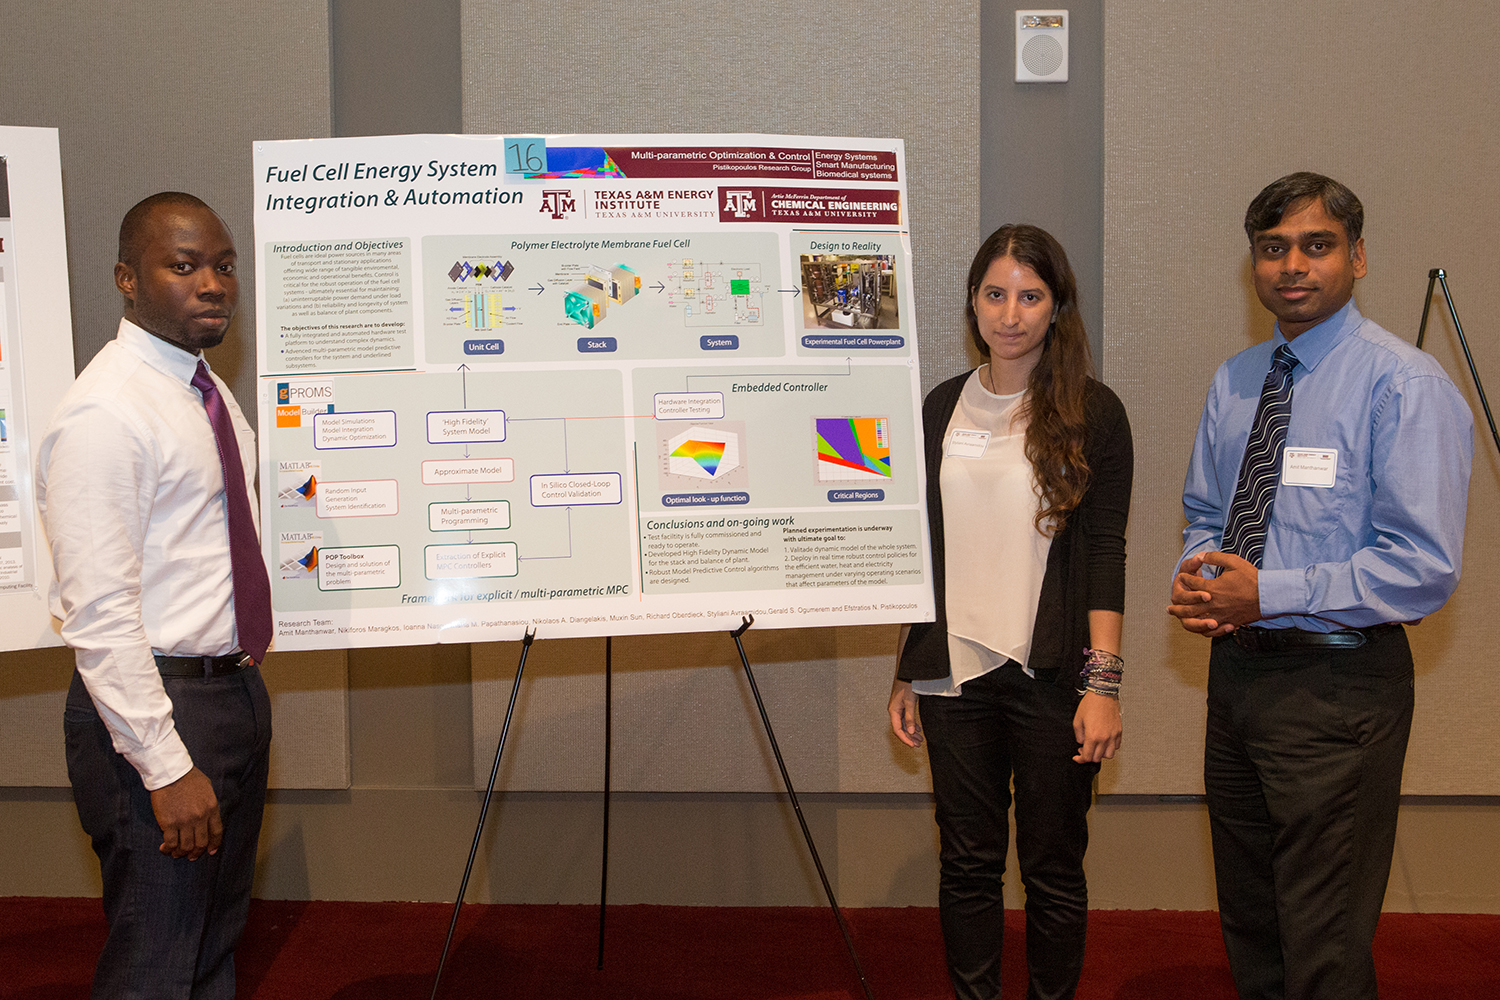 Second Place:  Gerald S. Ogumerem, Styliani Avraamidou, and Amit Manthanwar - Research Workshop on Non-Fossil-based Technologies for Energy